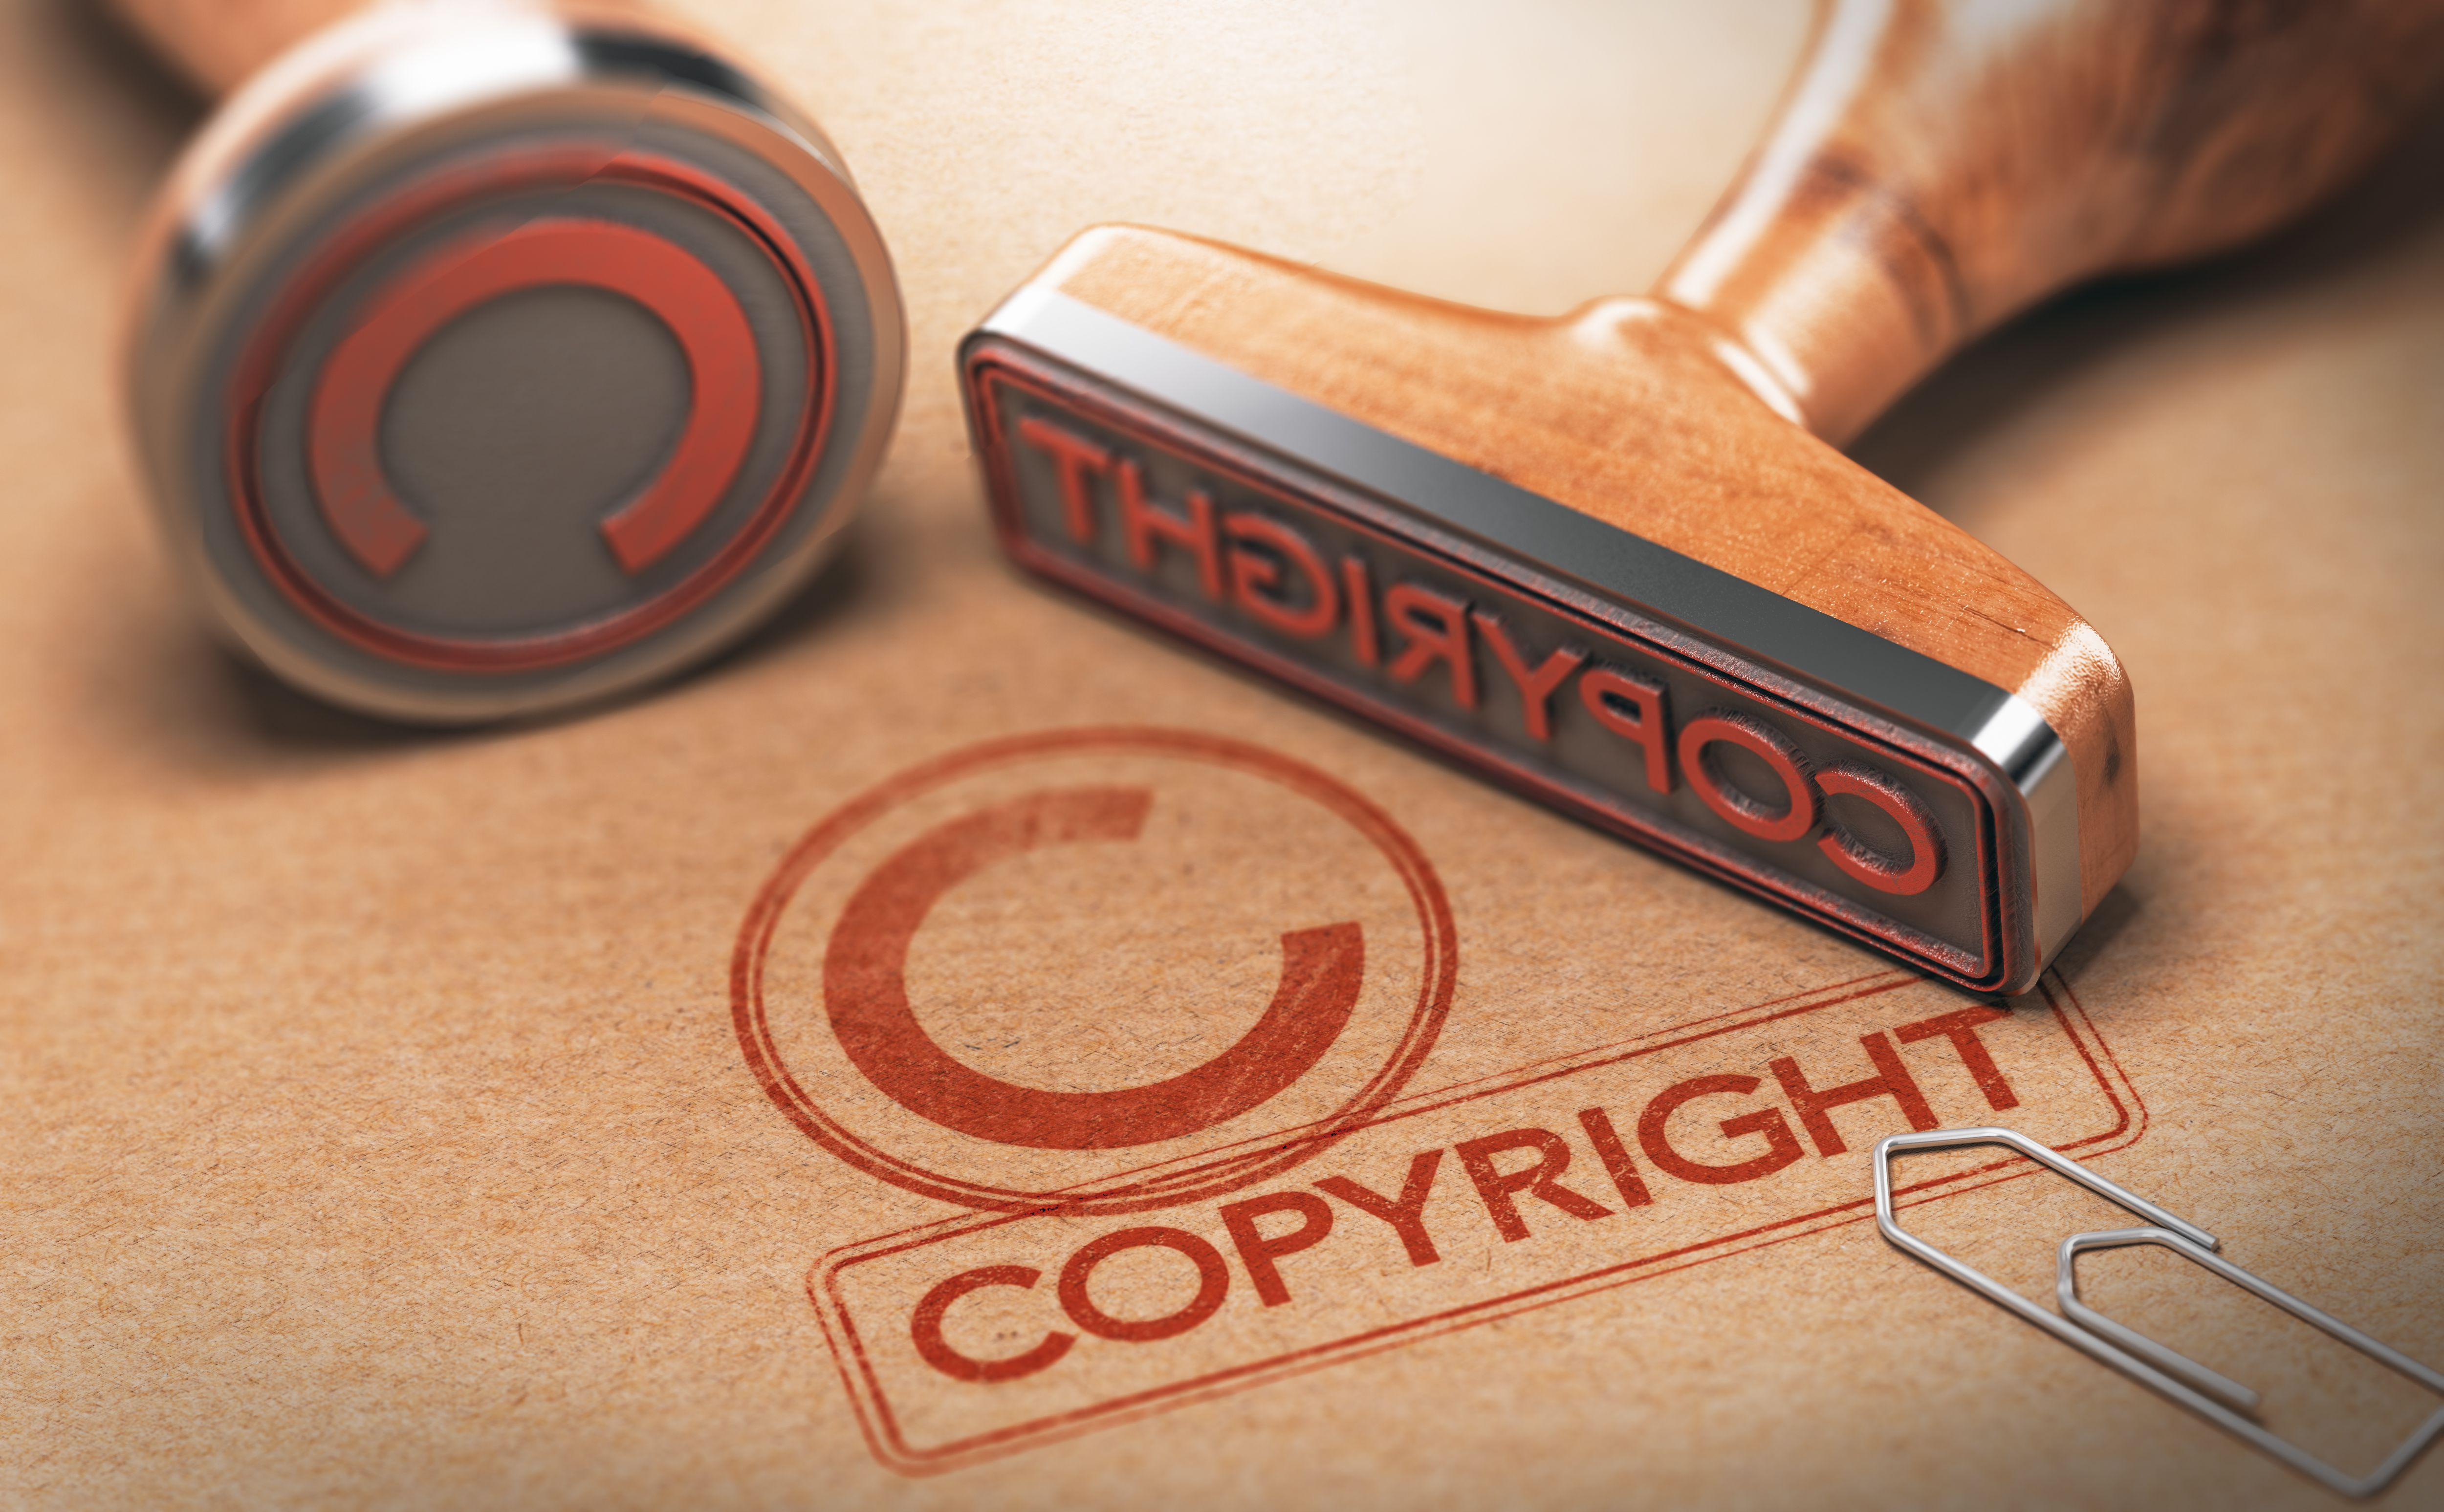 Fair Use of Copyrighted Work Explained